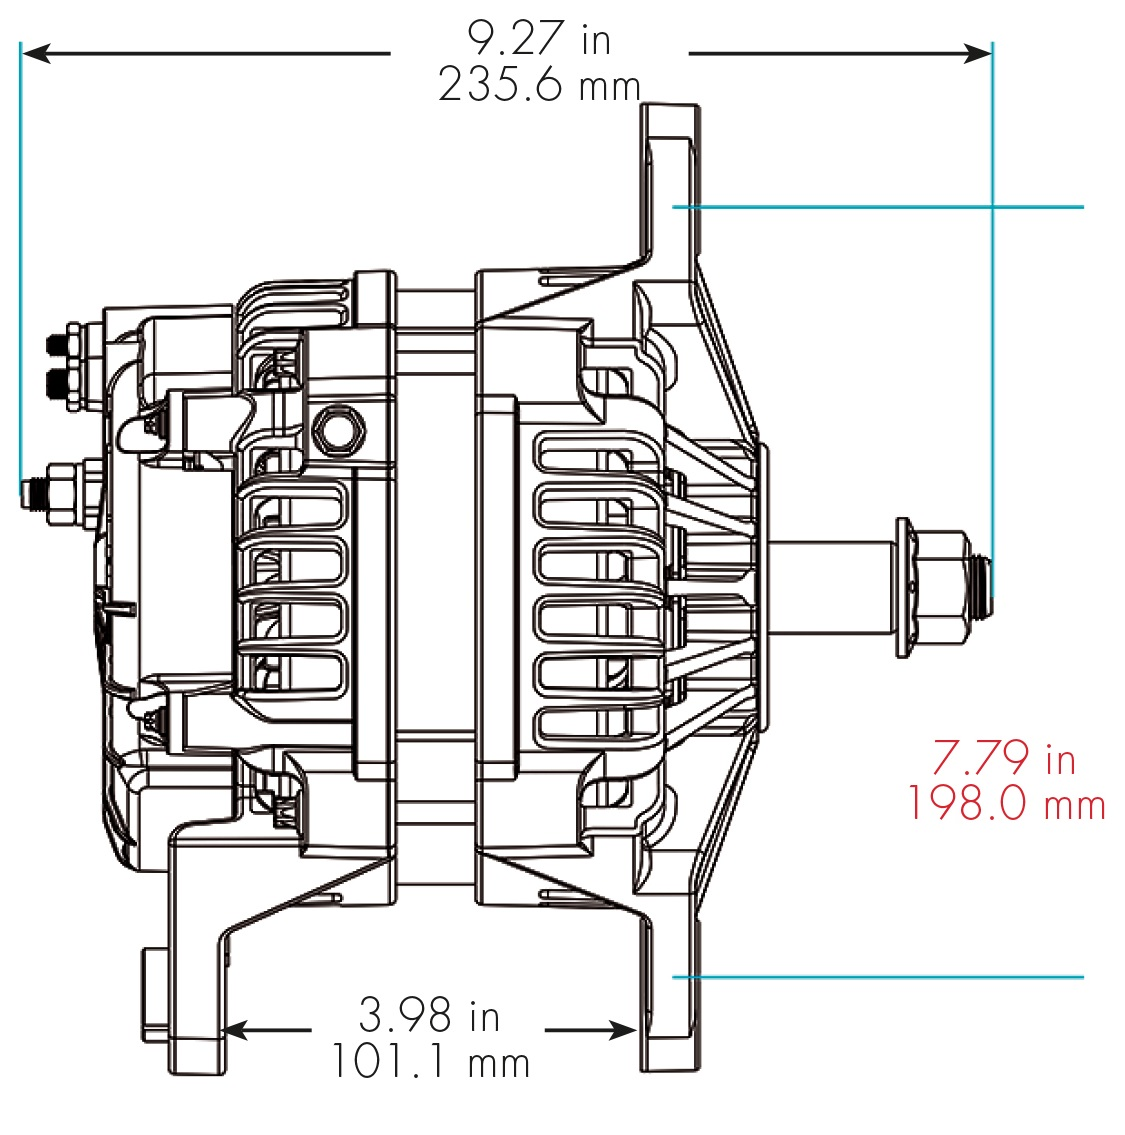 Delco 24si Alternator Wiring Diagram 50dn Alternators By Model Family Remy